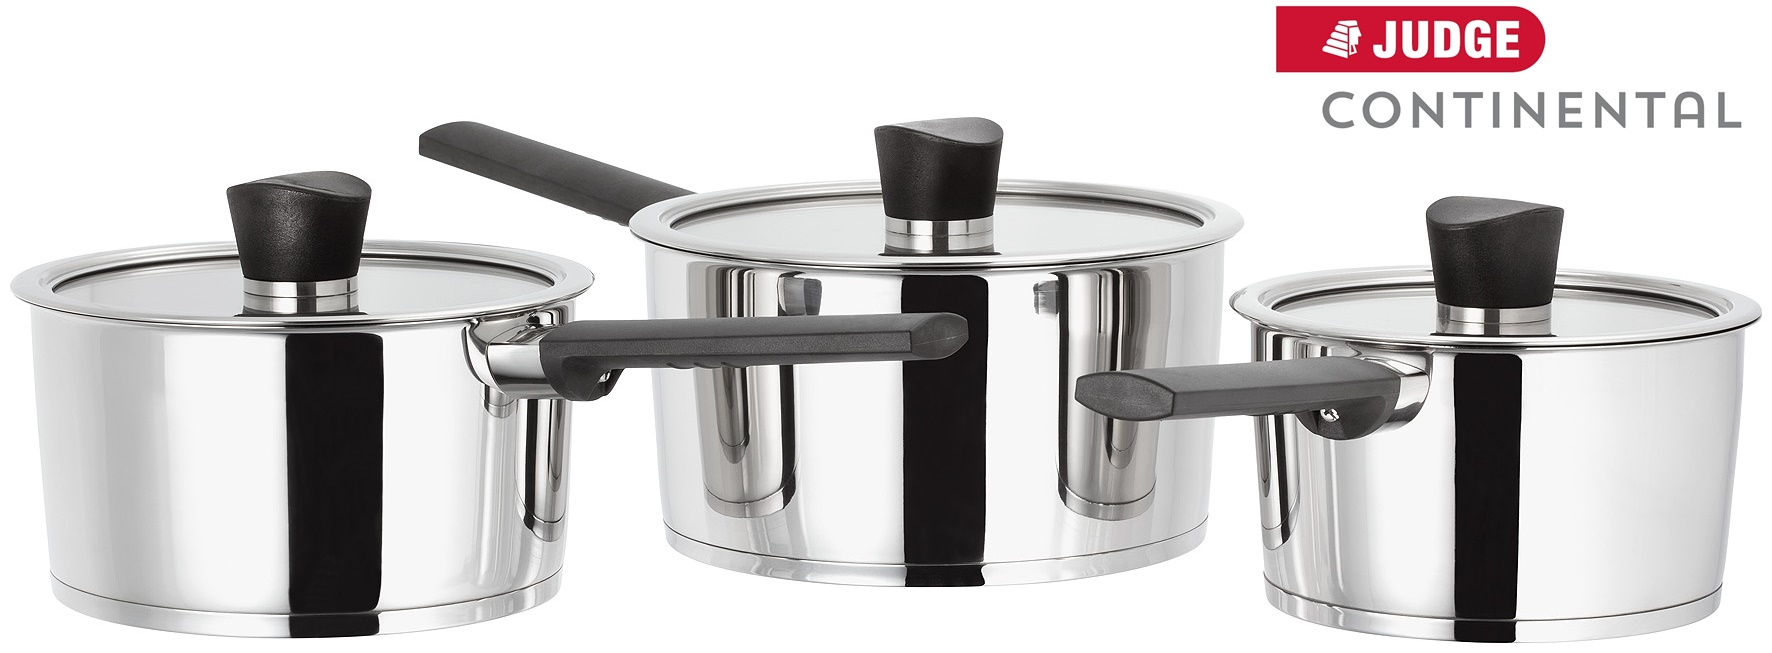 Judge Continental 3 Saucepan Set, competition, giveaway, win